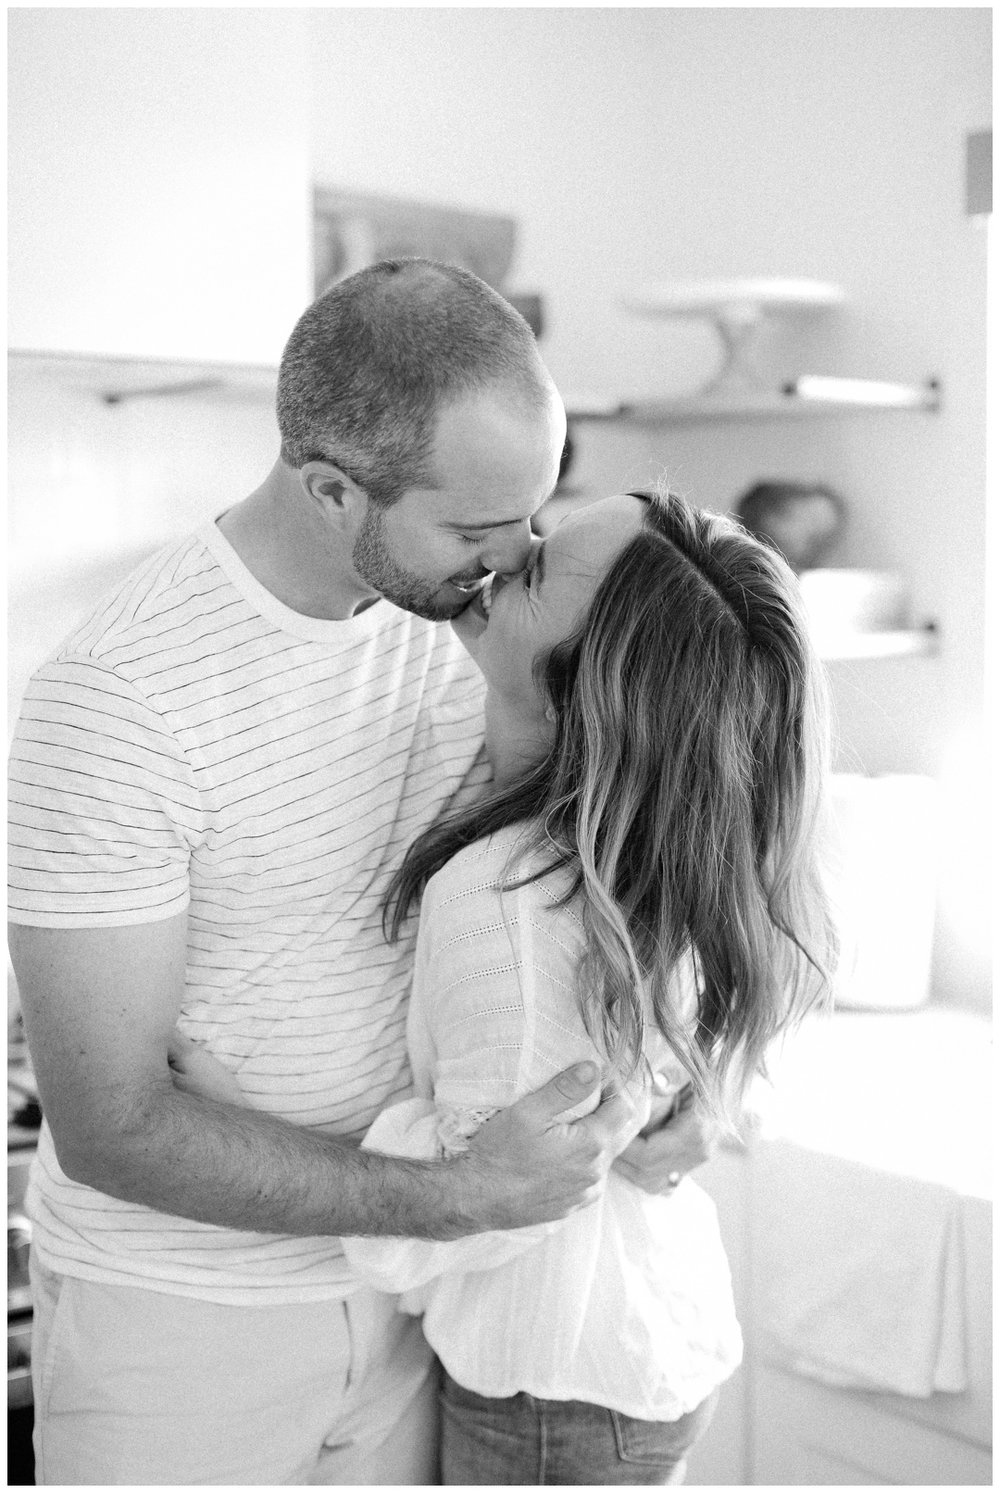 Kristin_Dinsmore_Family_Newport_Beach_Family_Photographer_in_home_lifestyle_session_Cori_kleckner_photography_Orange_county_in_home_Family_photos_Newport_Beach_Family_photos__1758.jpg